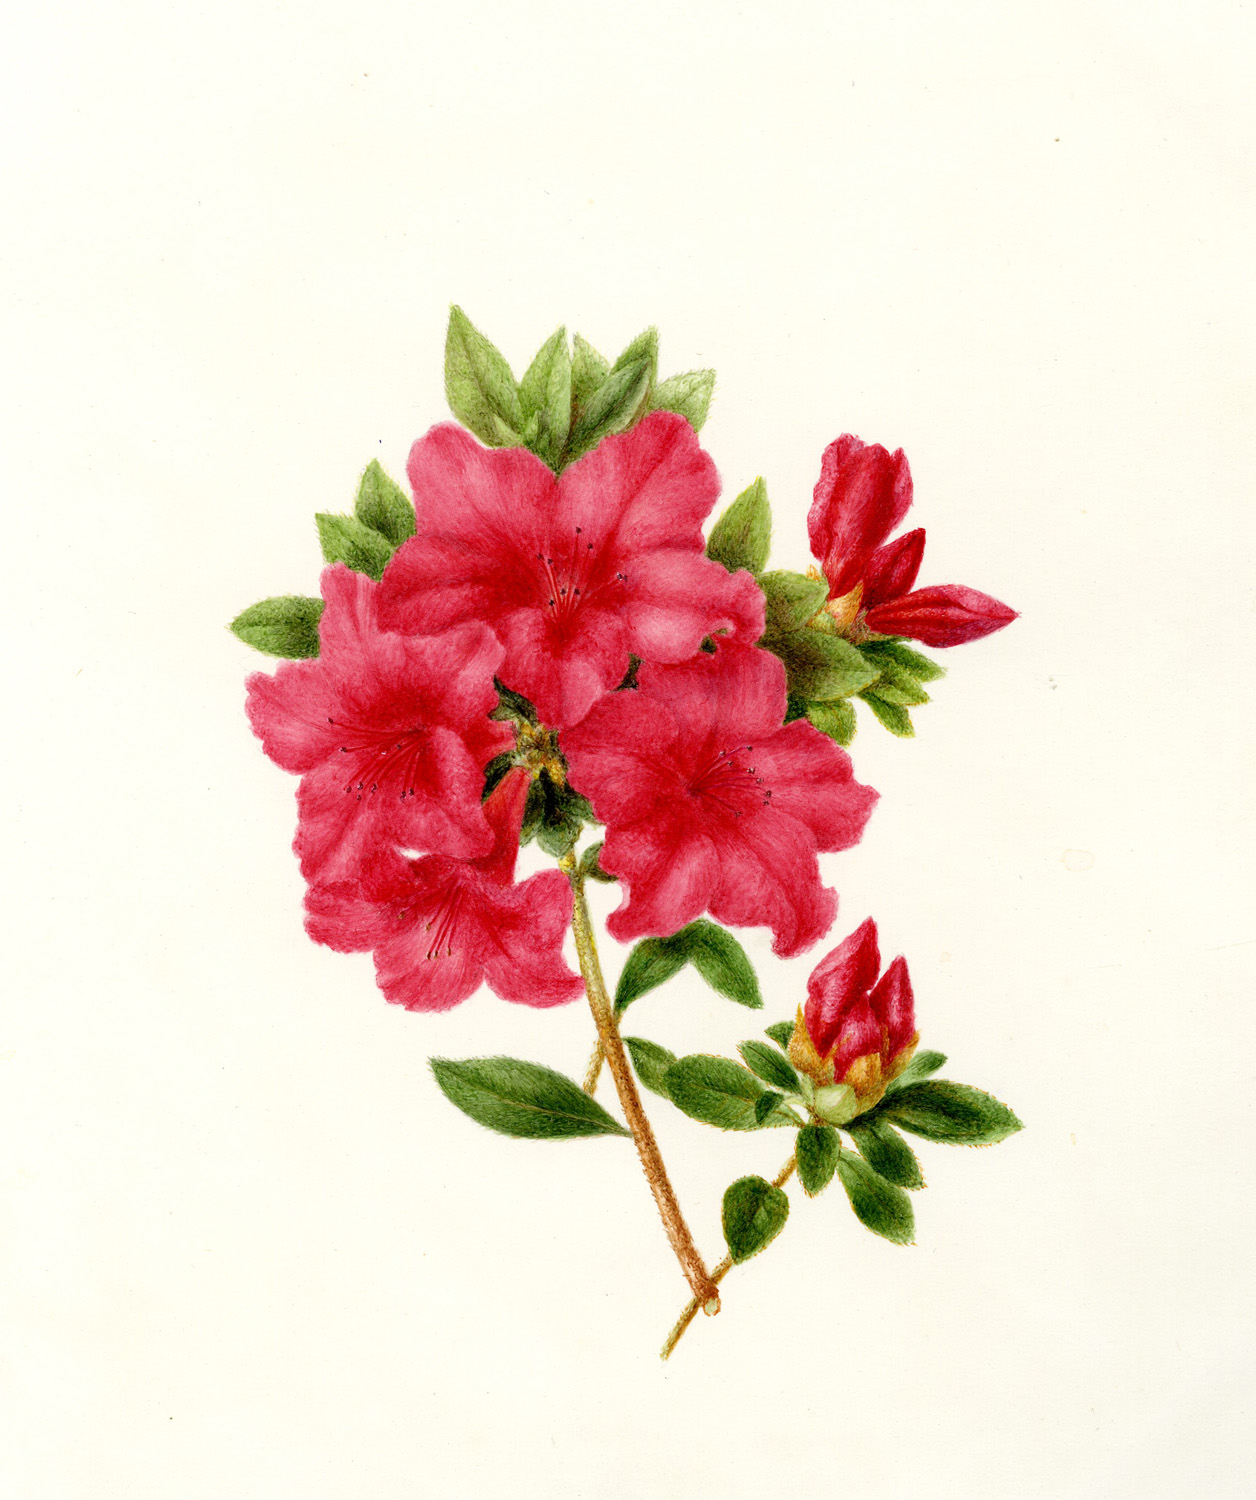 Azalea Flower Drawing at GetDrawings.com | Free for personal use ...